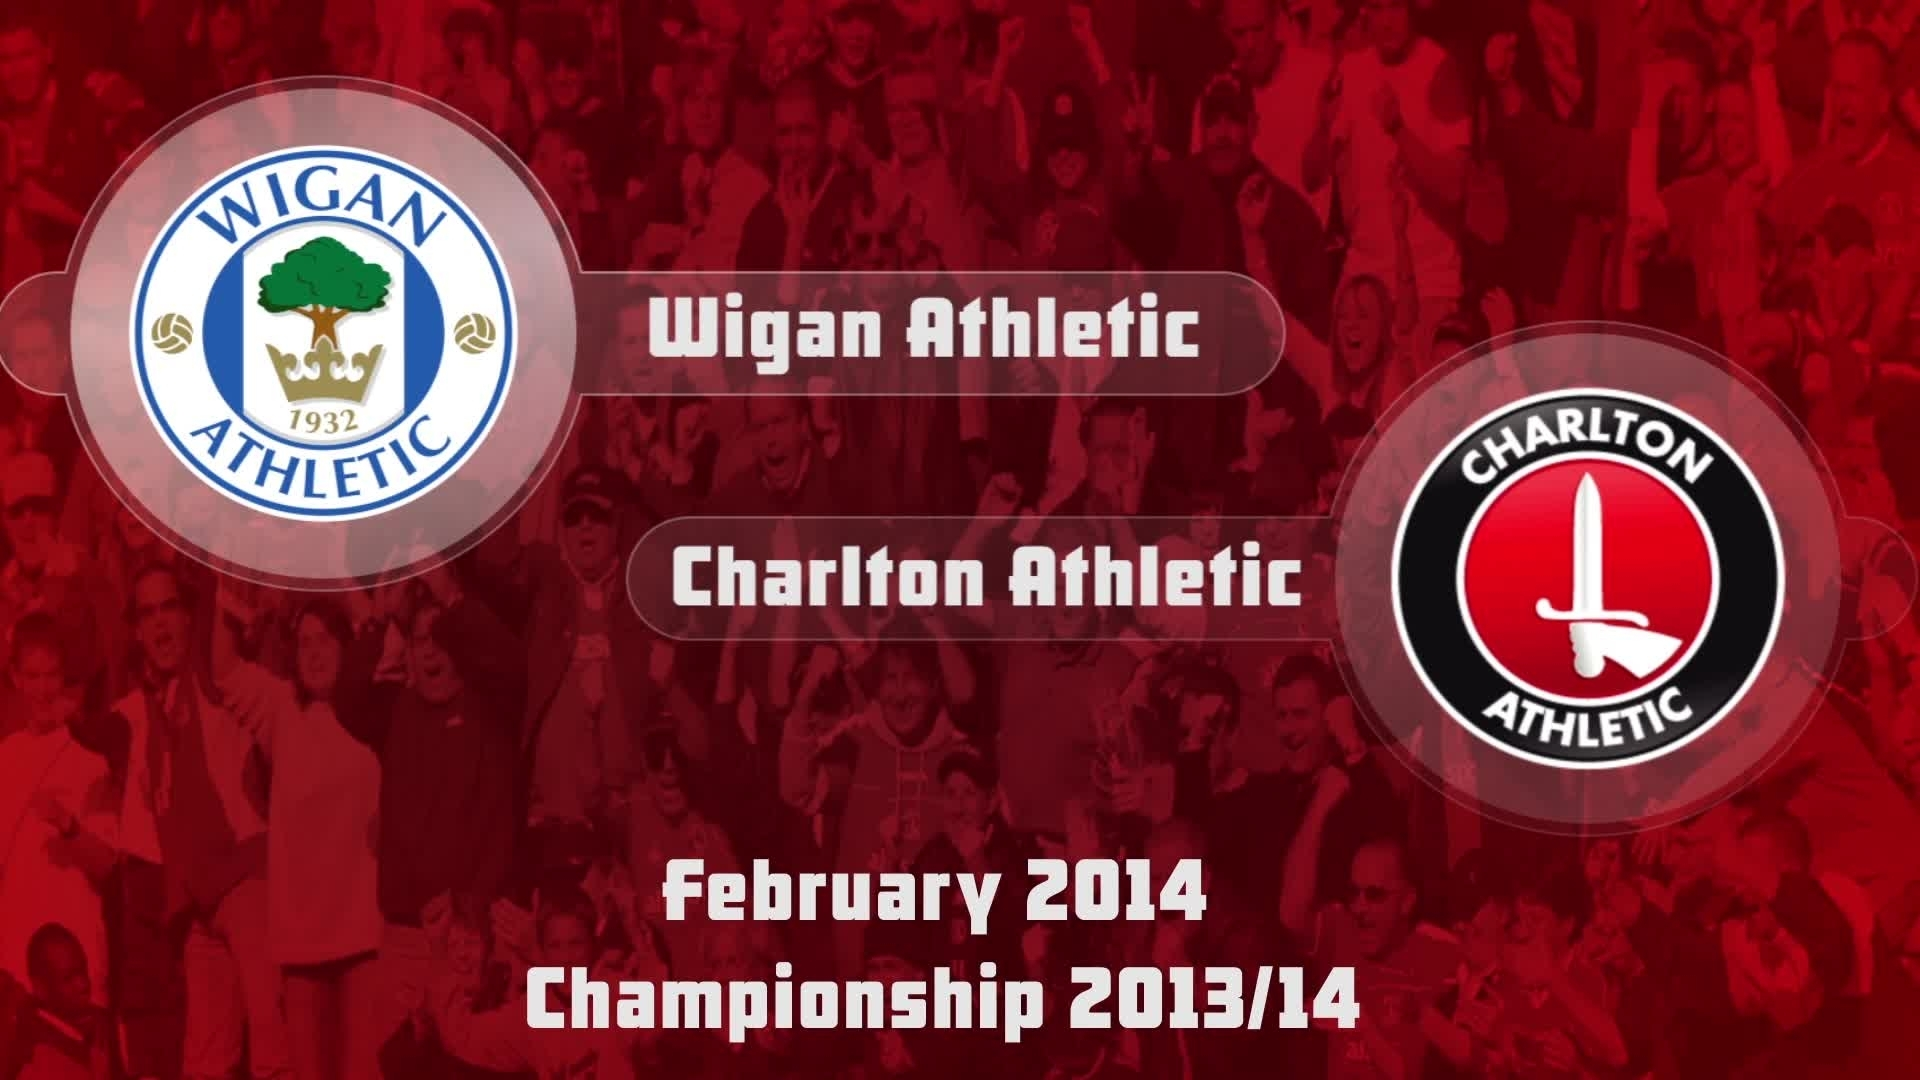 32 HIGHLIGHTS | Wigan 2 Charlton 1 (Feb 2014)